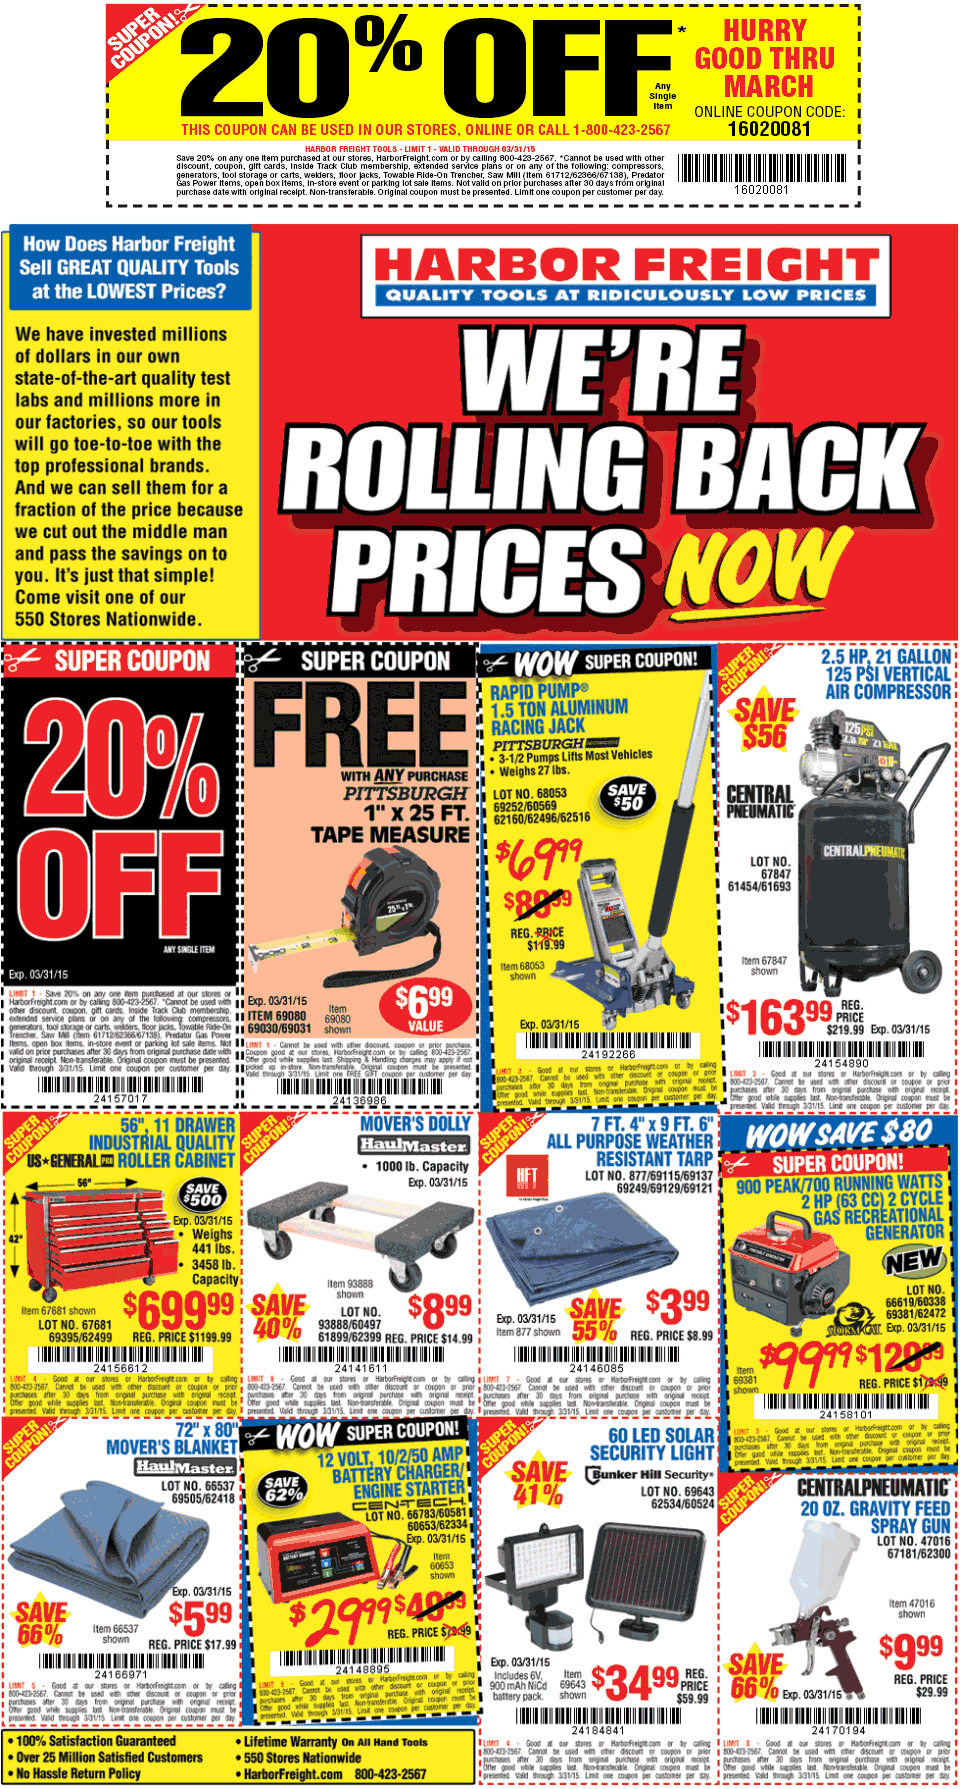 Harbor Freight Coupon January 2017 20% off a single item & more at Harbor Freight Tools, or online via promo code 16020081